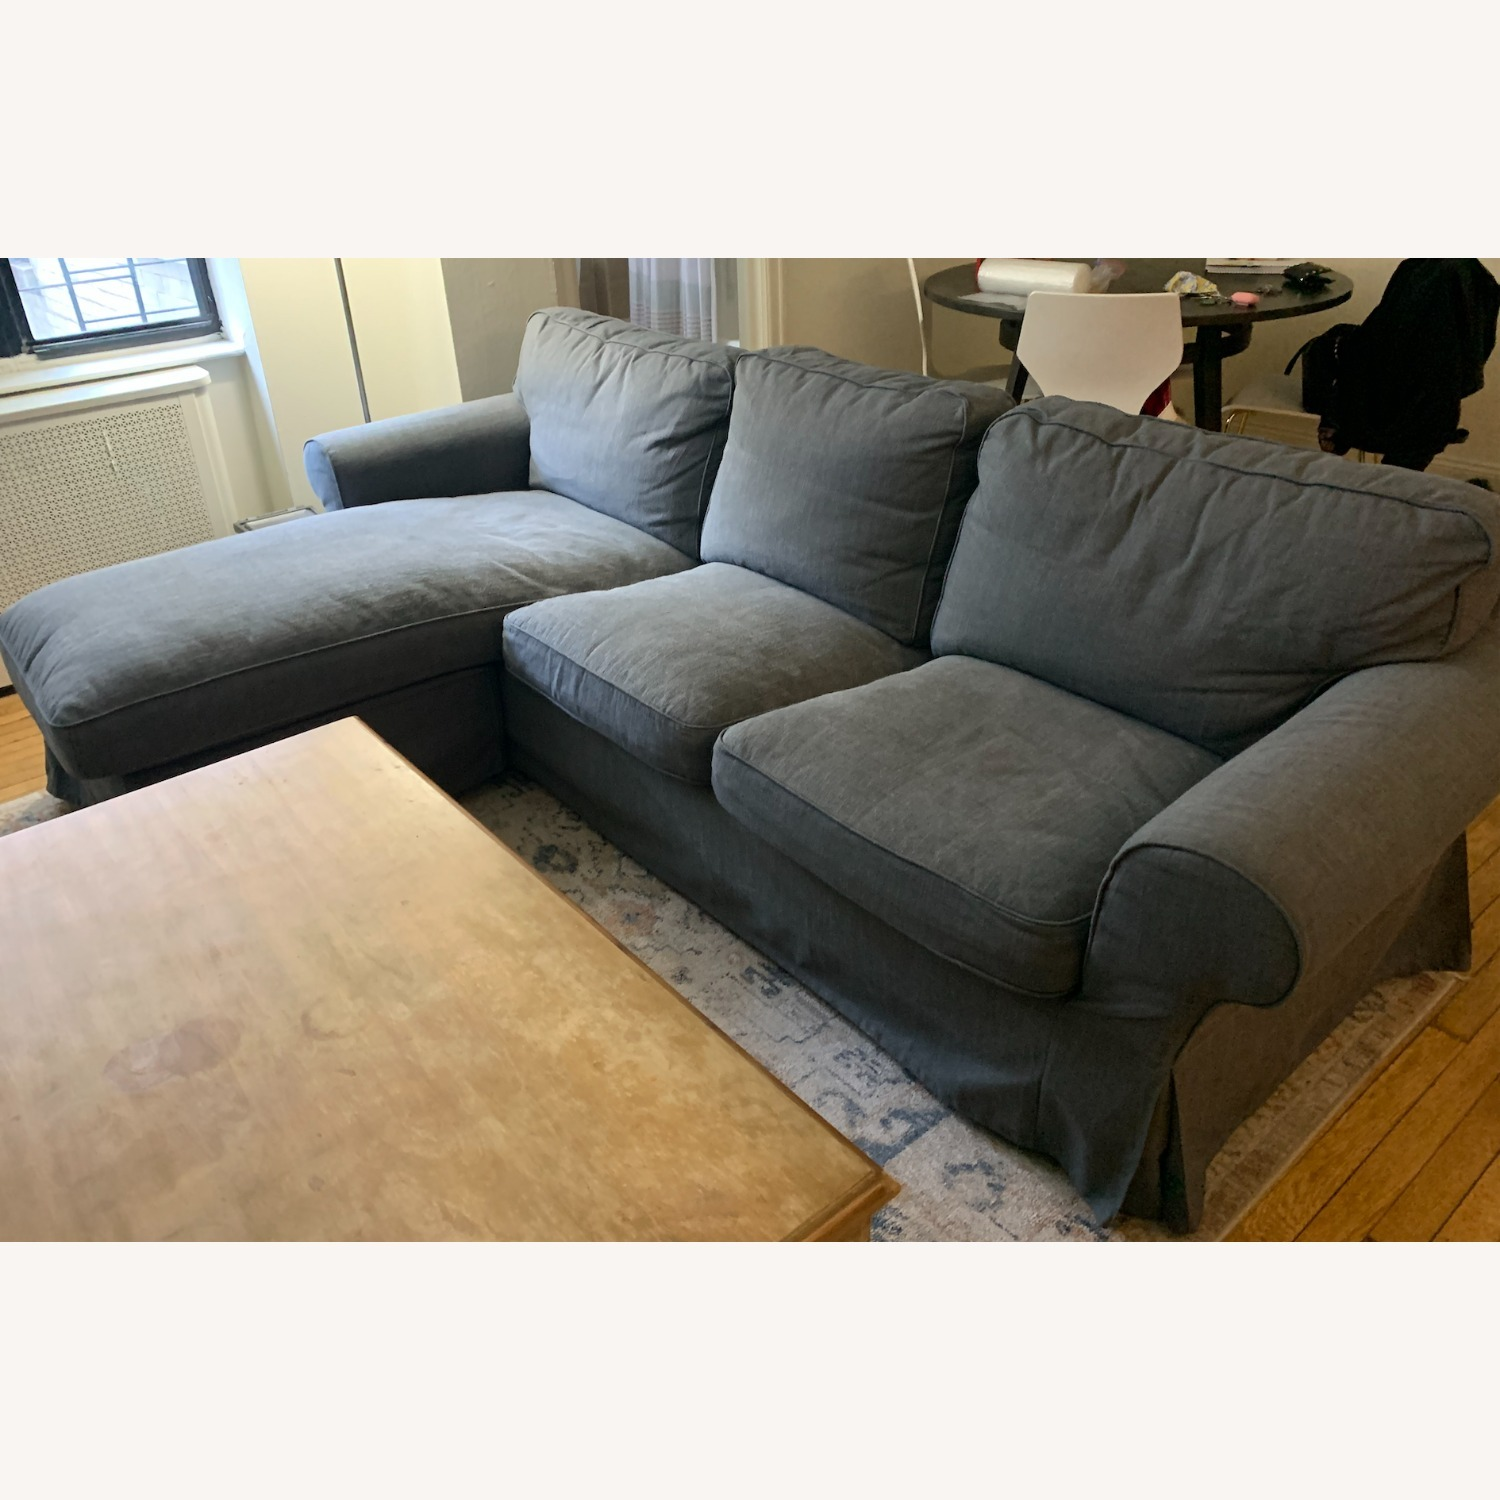 IKEA Grey 3-Seat Sofa with Chaise - image-4